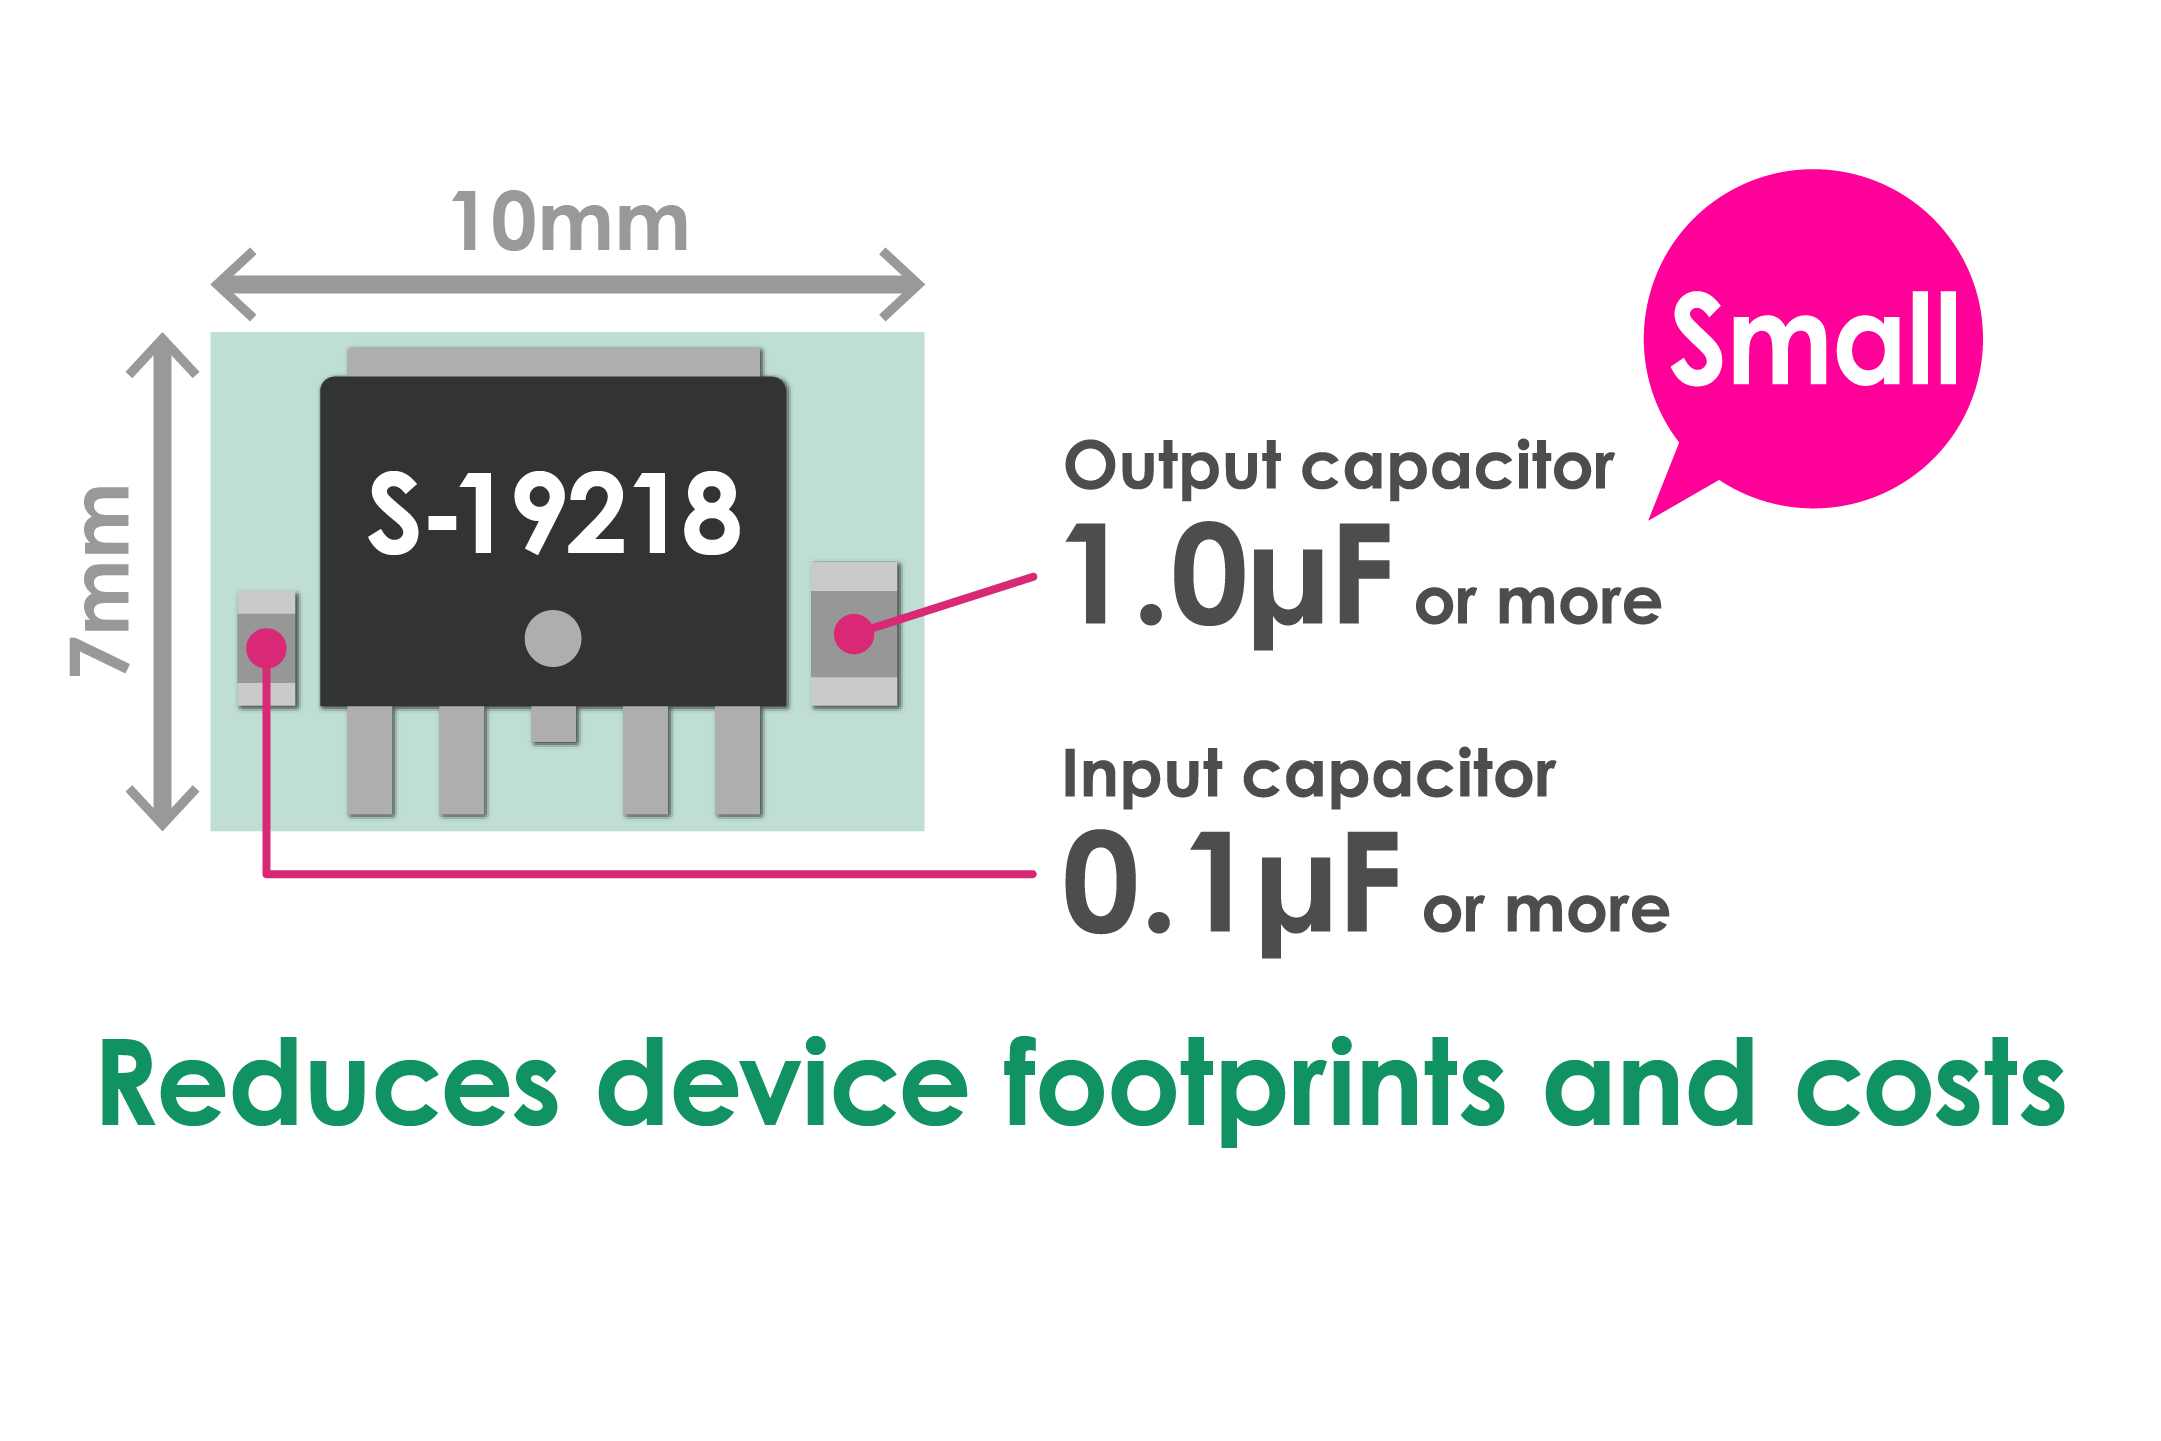 S-19218: Reduces device footprints and costs